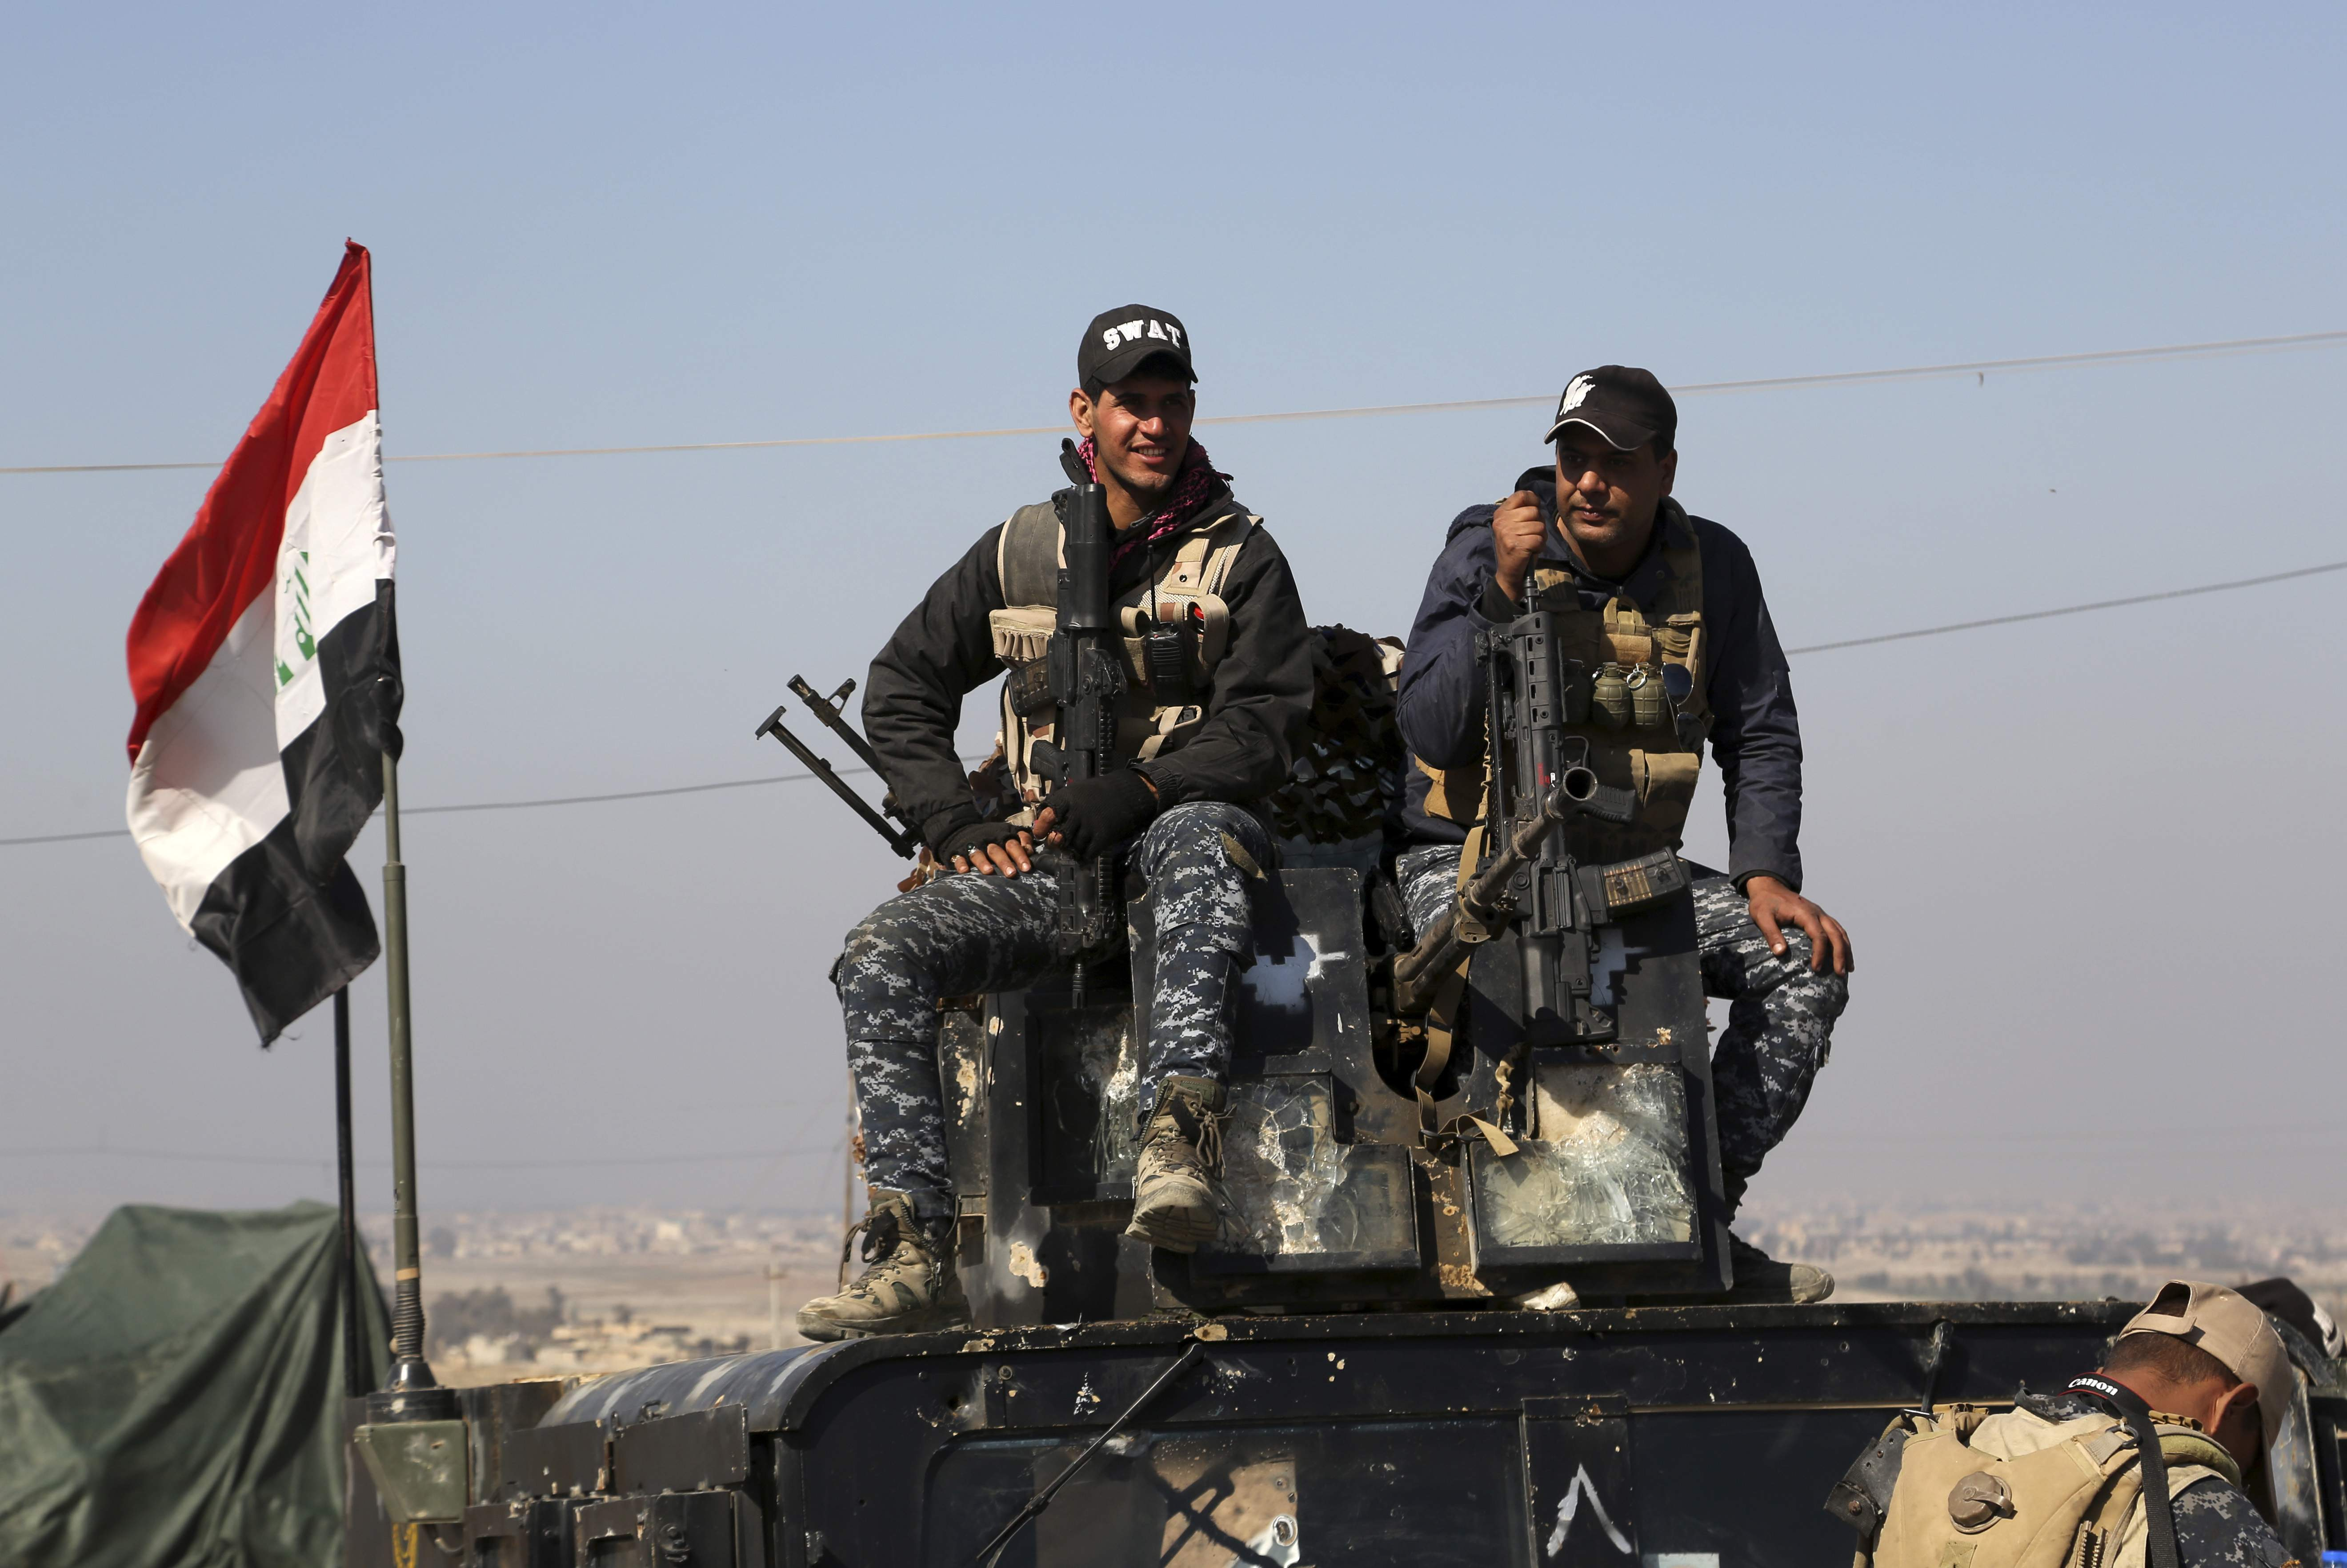 Iraqi Federal Police: 850 ISIS Members Killed In Mosul Since February